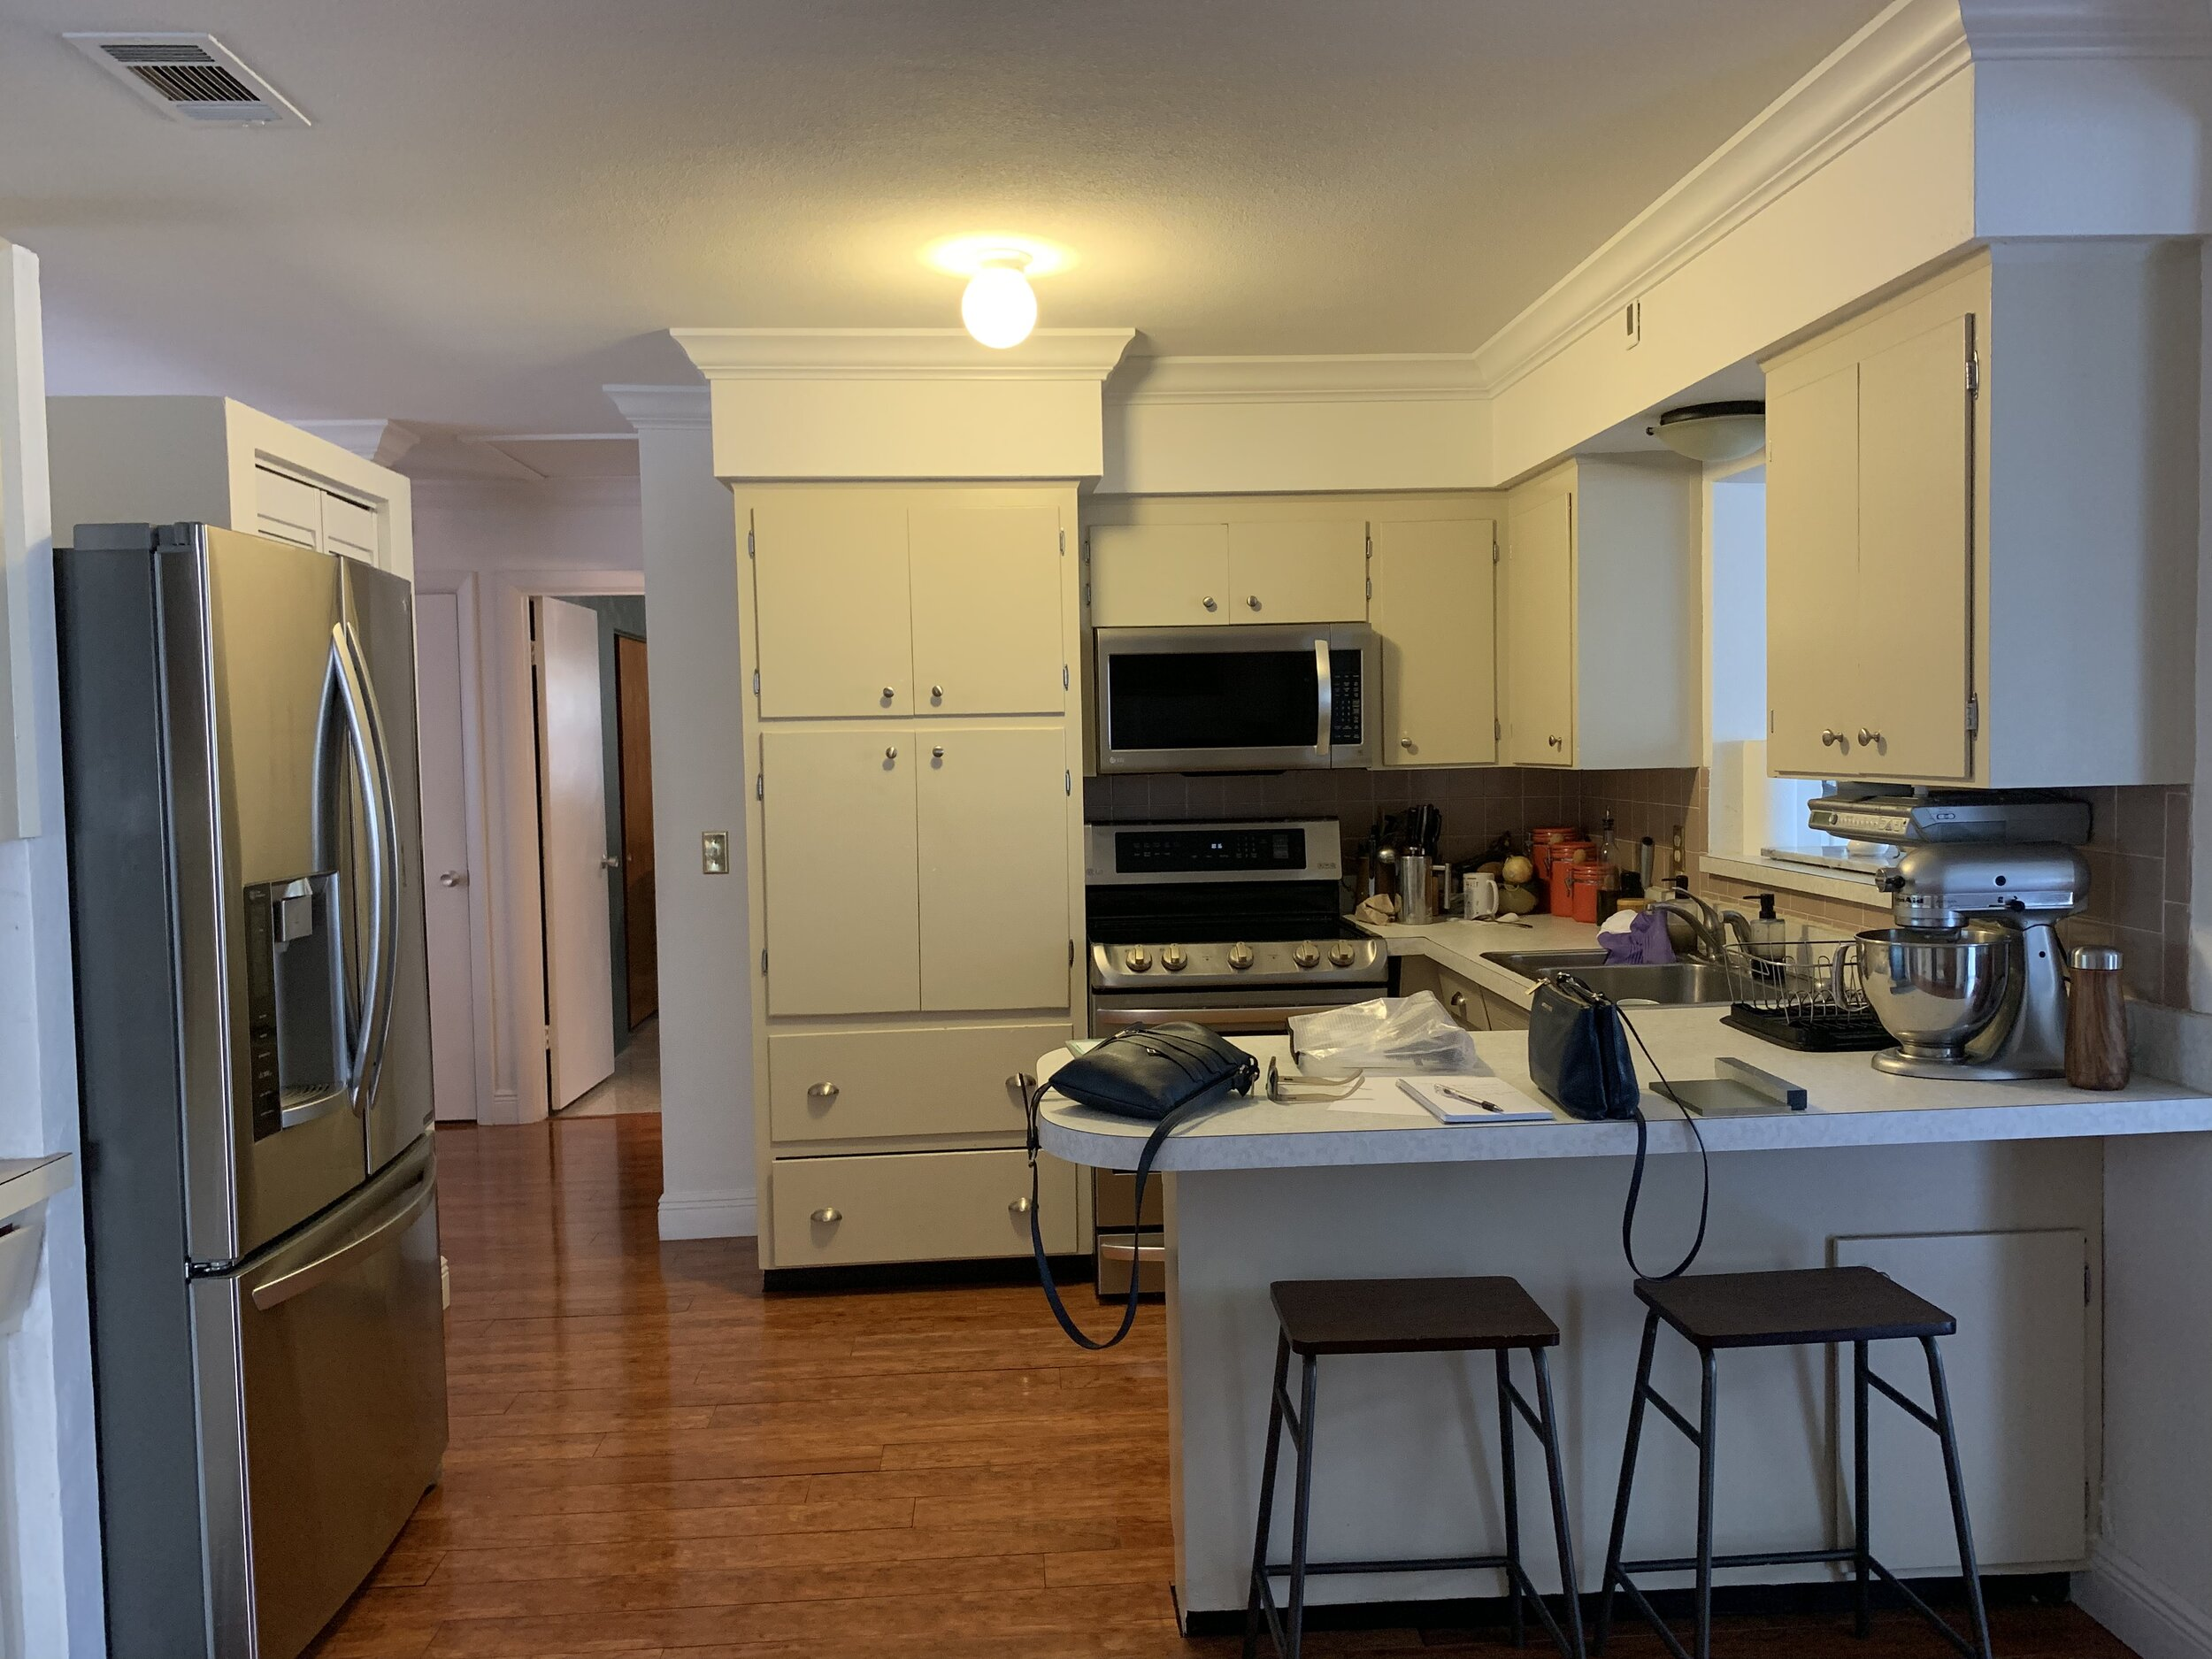 """The """"Original"""" kitchen of the house. Inadequate pantry, lack of proper drawers, and bad appliance placement."""